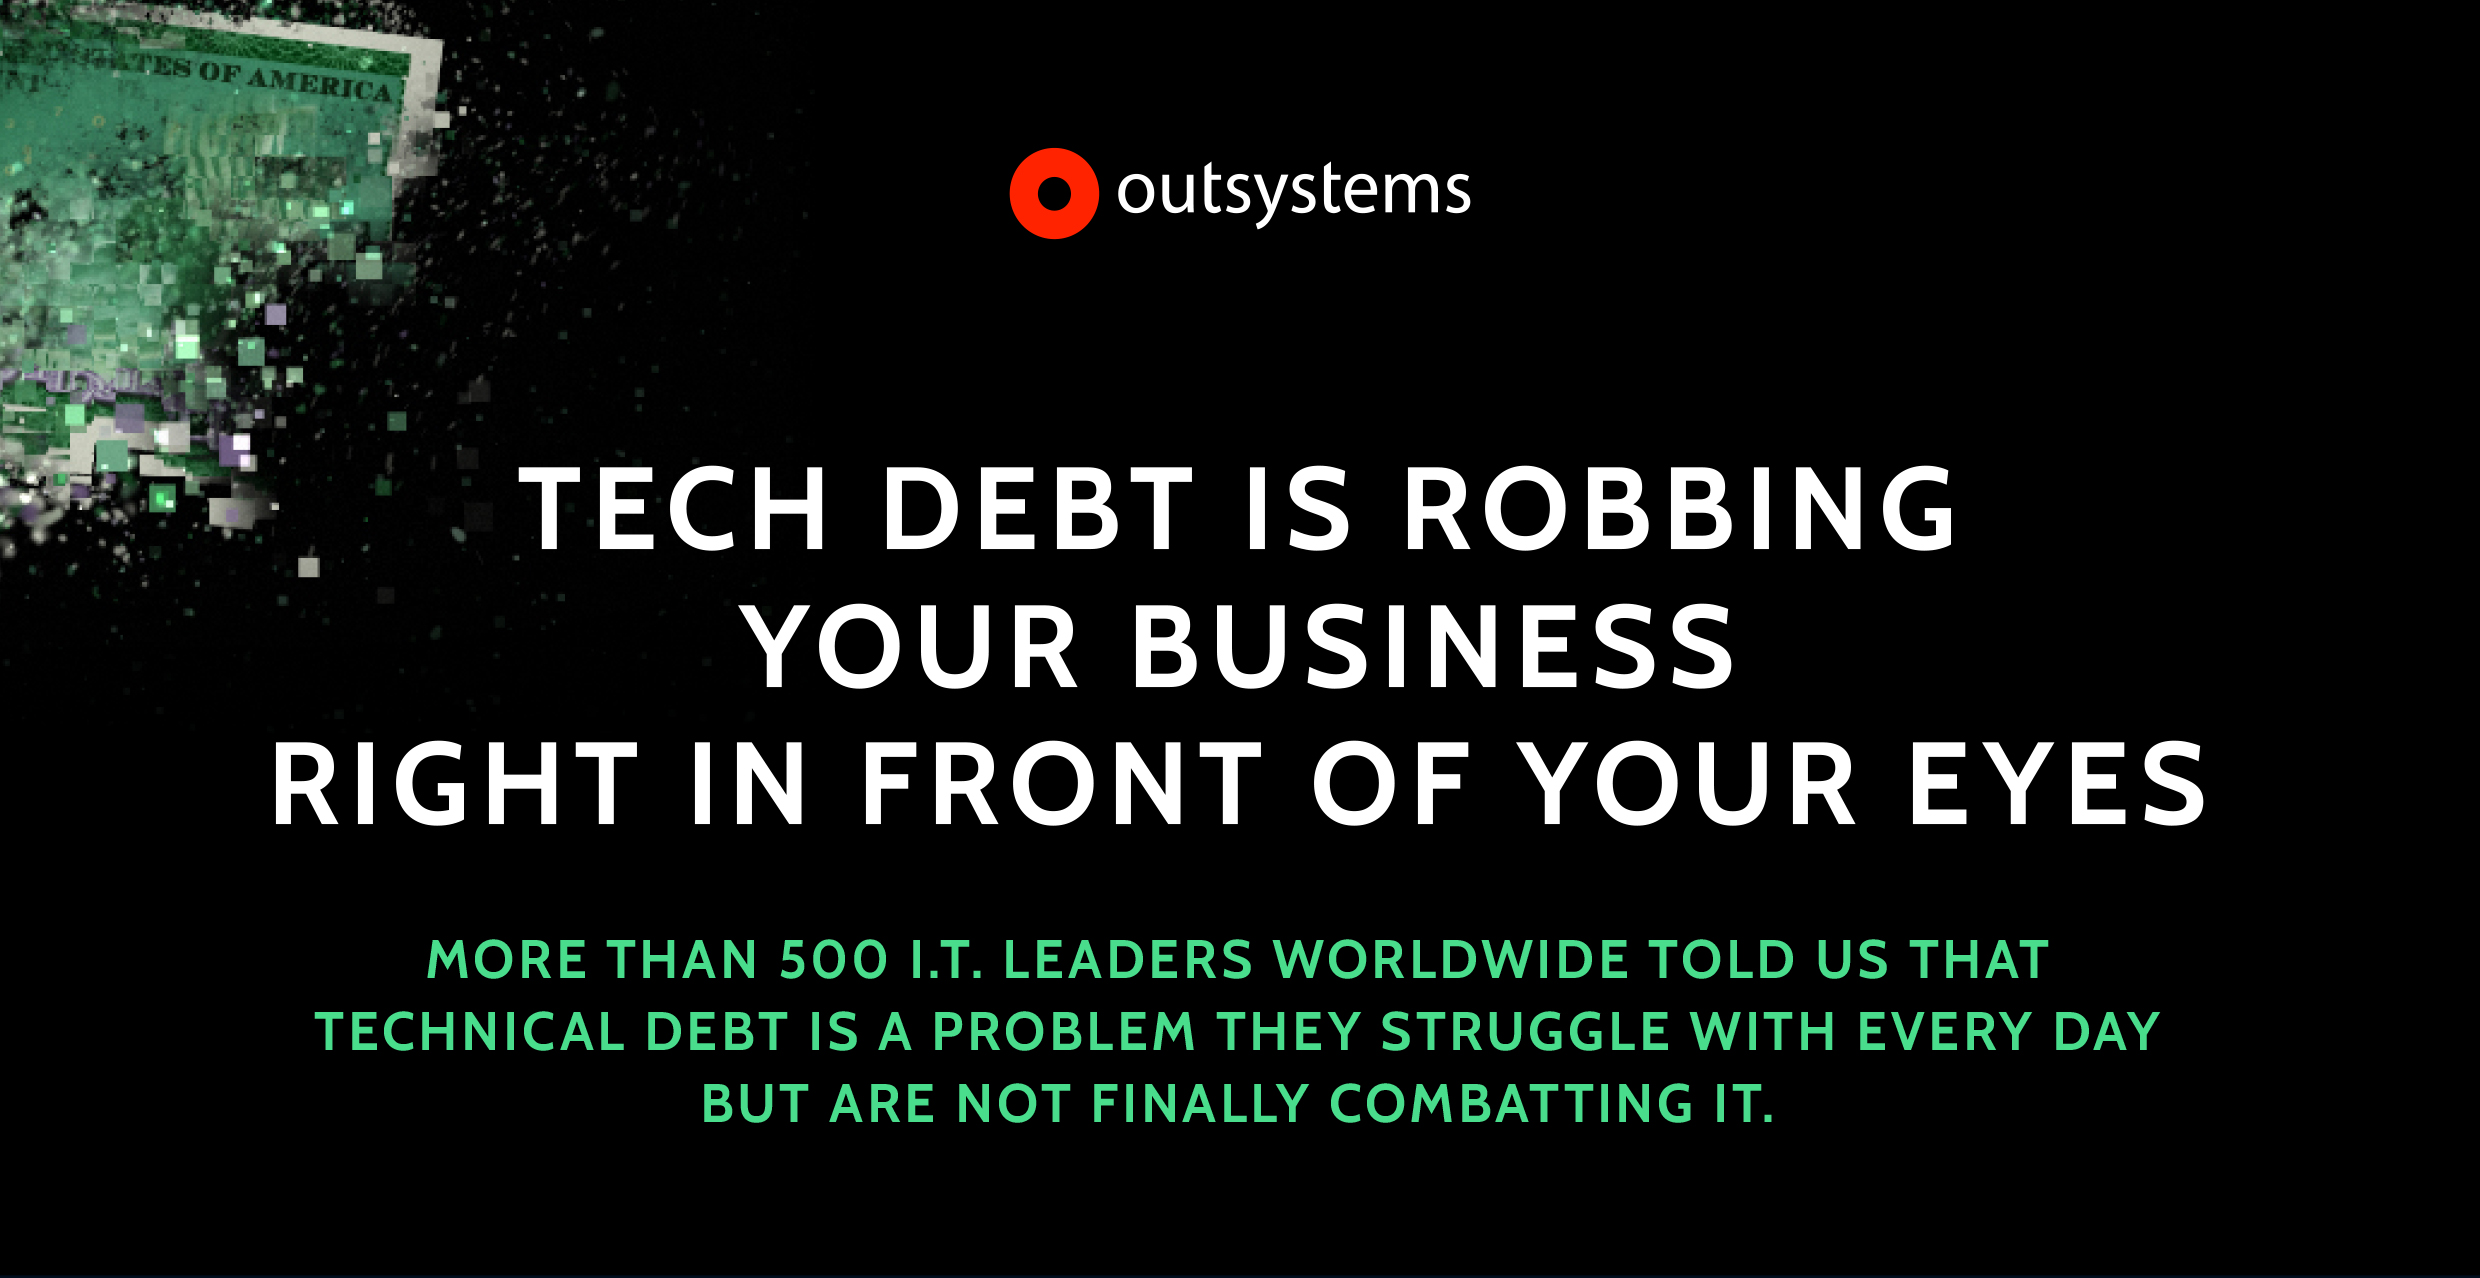 Tech debt is robbing your business…